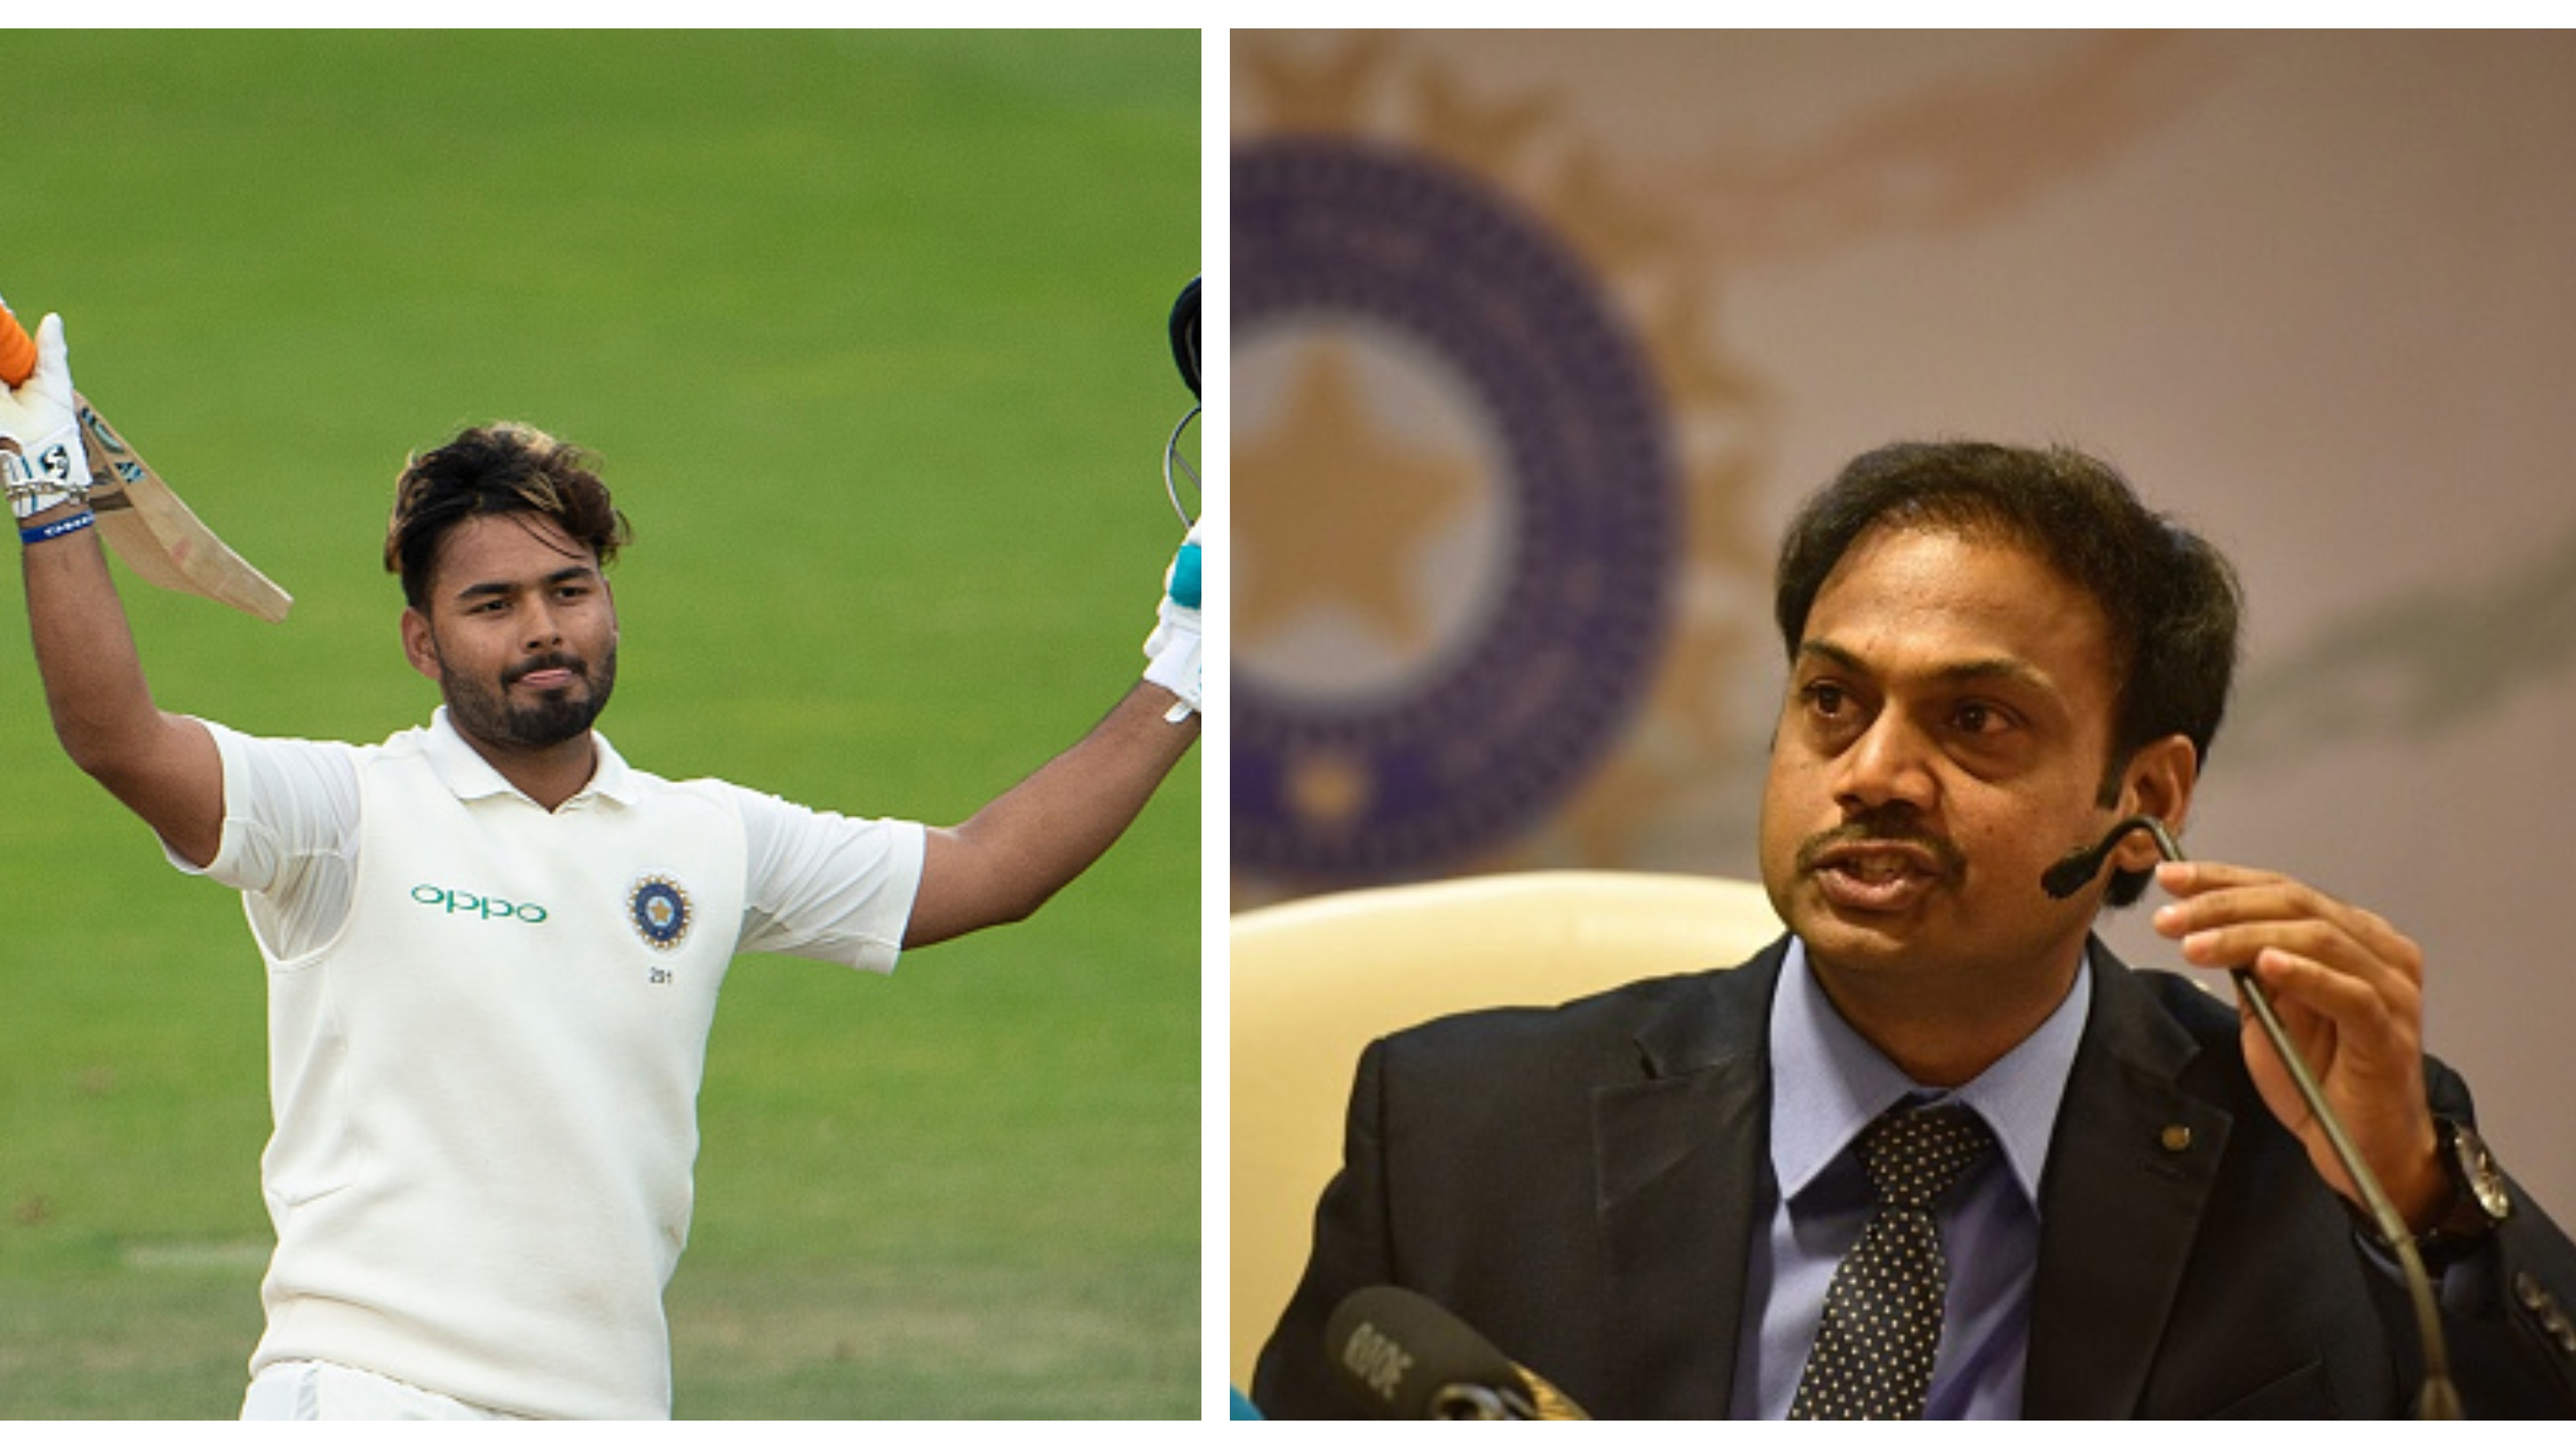 He is a fine batsman but Rishabh Pant needs to get better with the gloves, says MSK Prasad